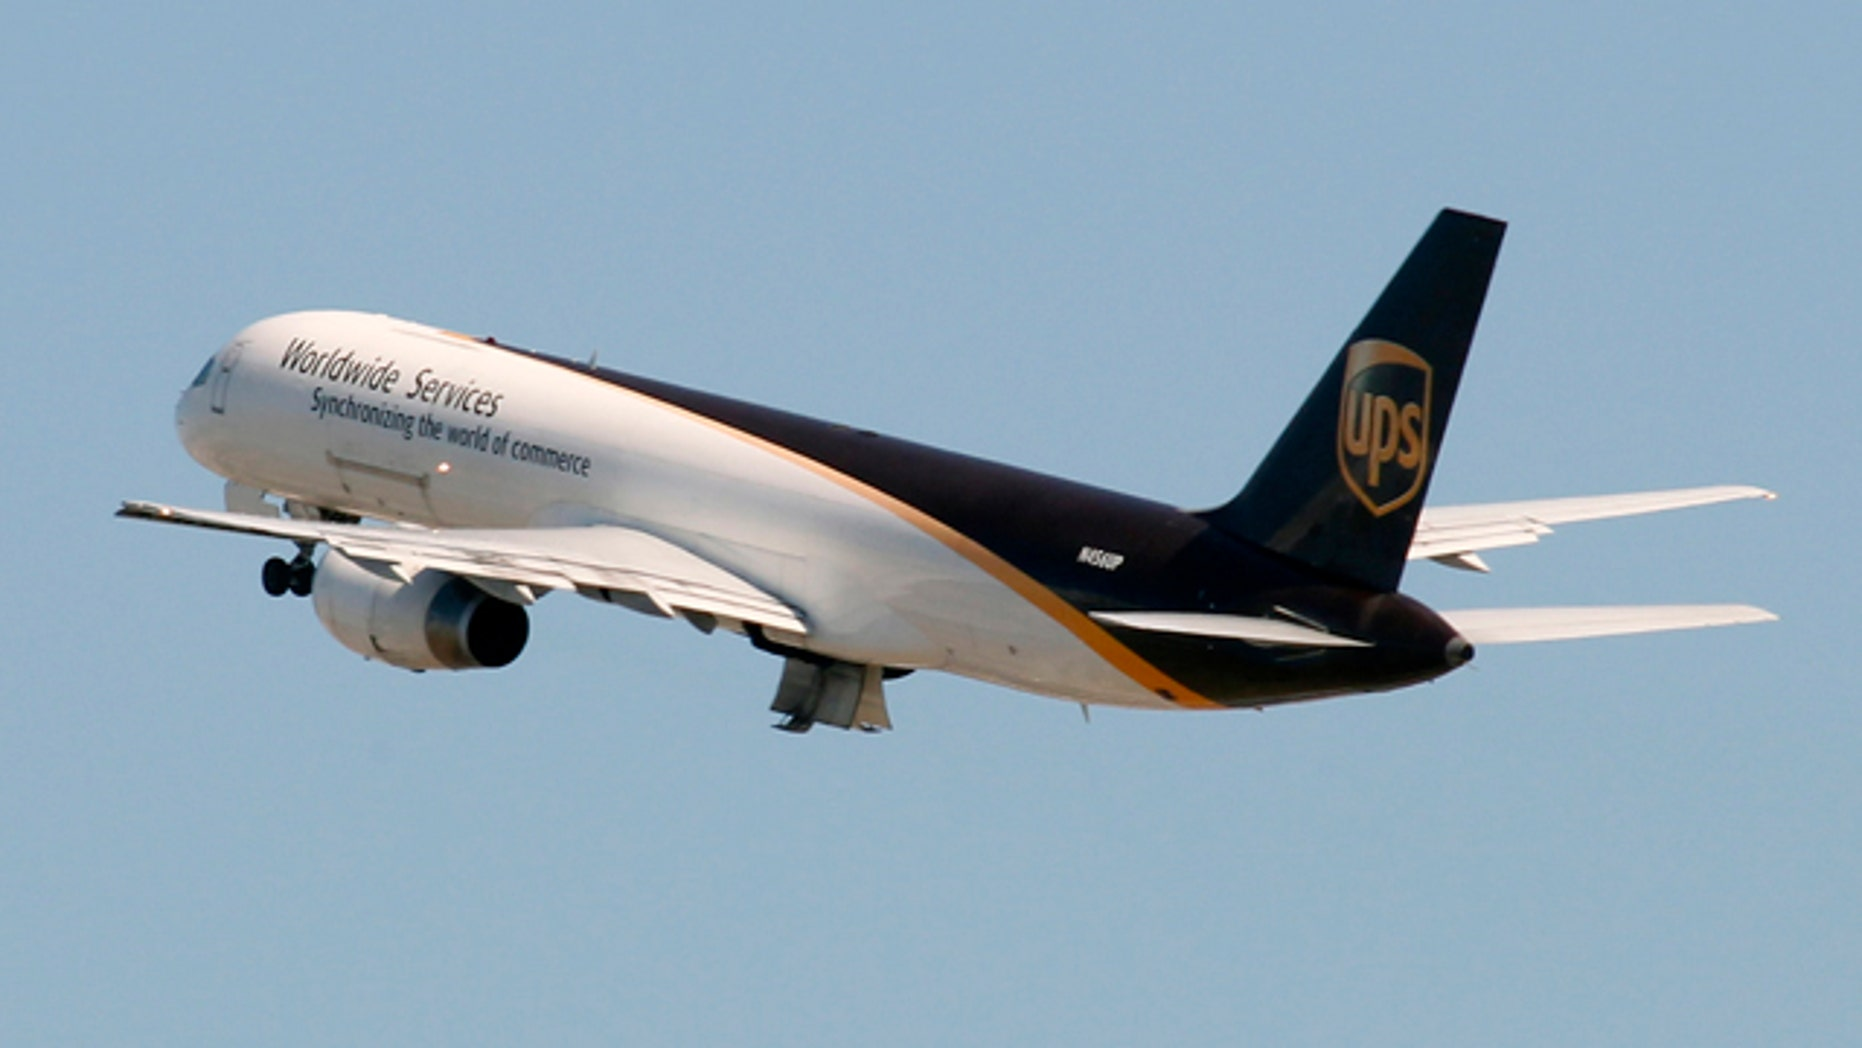 June 14: A UPS Boeing 757-24APF cargo plane takes off from Miami International Airport.